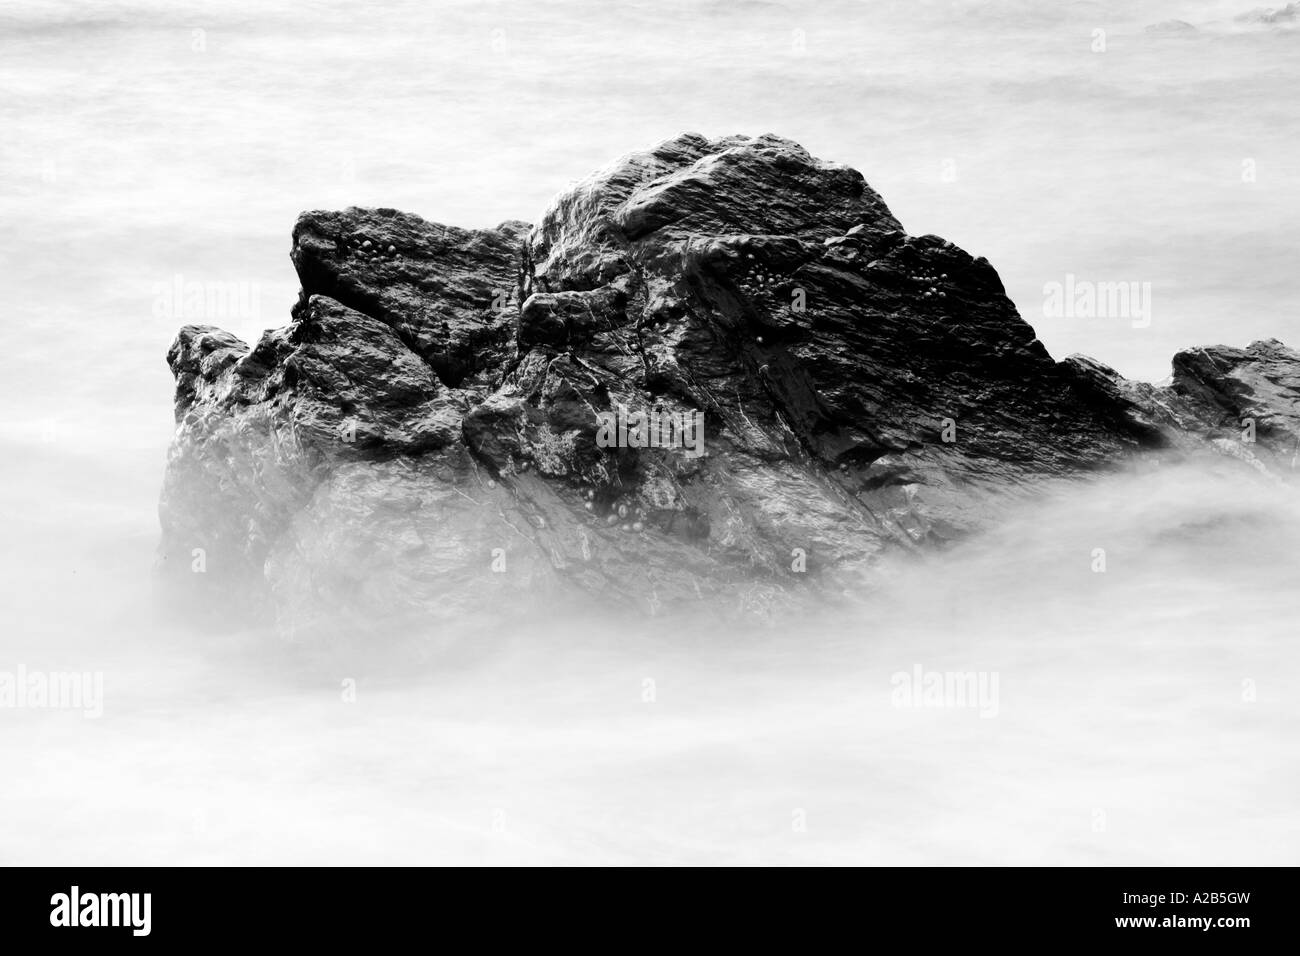 Black and white monochrome of a rock washed by the waves of the sea coast - Stock Image